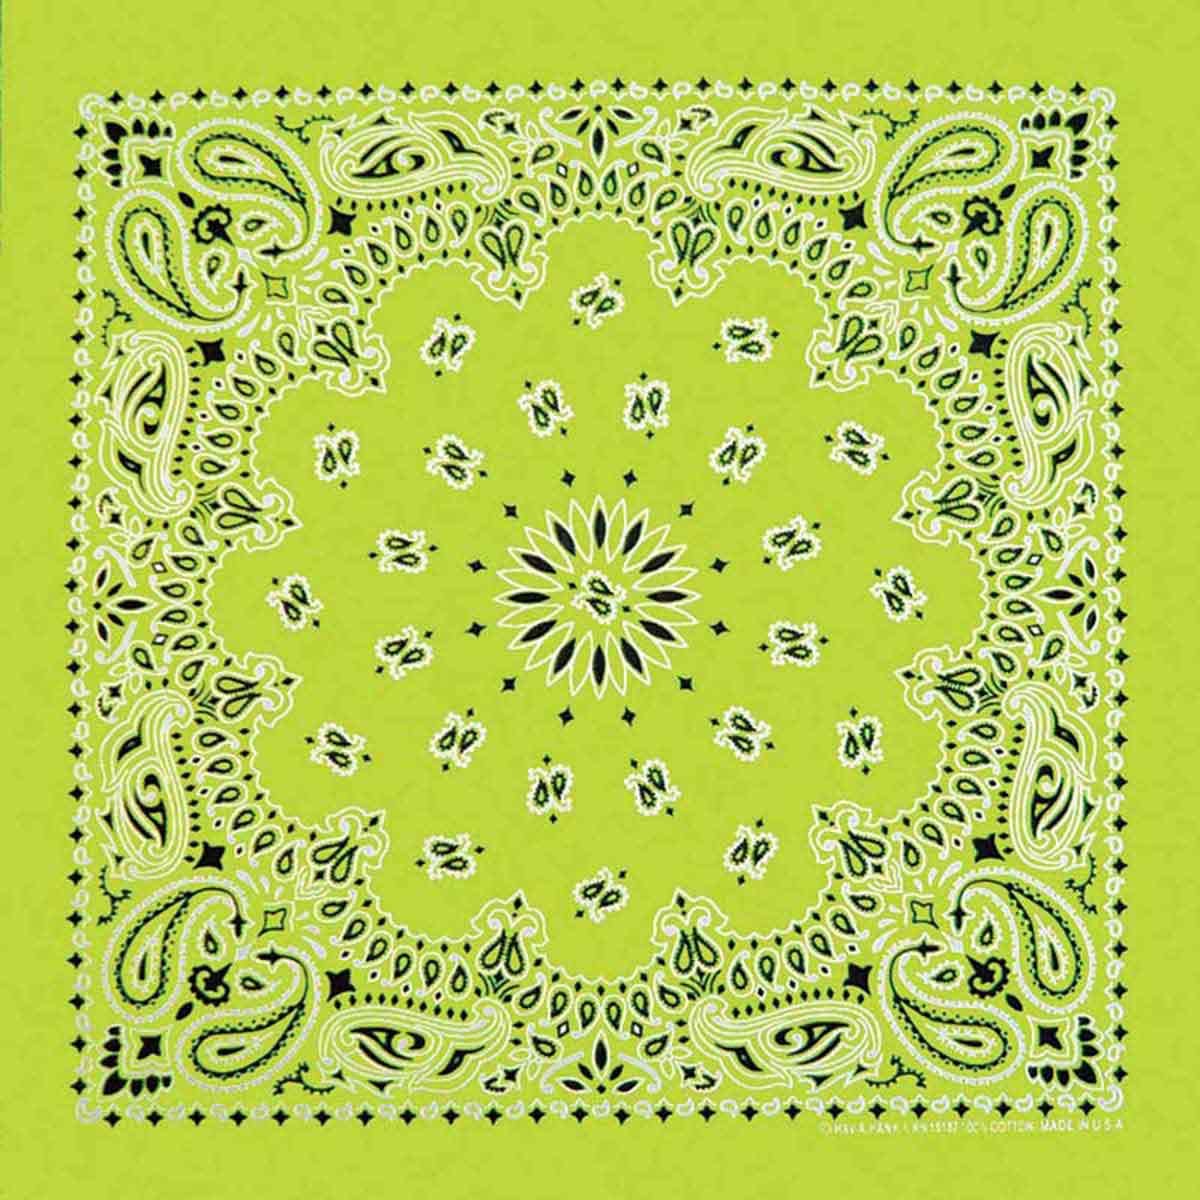 Neon Green Paisley Bandanna for Dog Grooming at Ryan's Pet Supplies